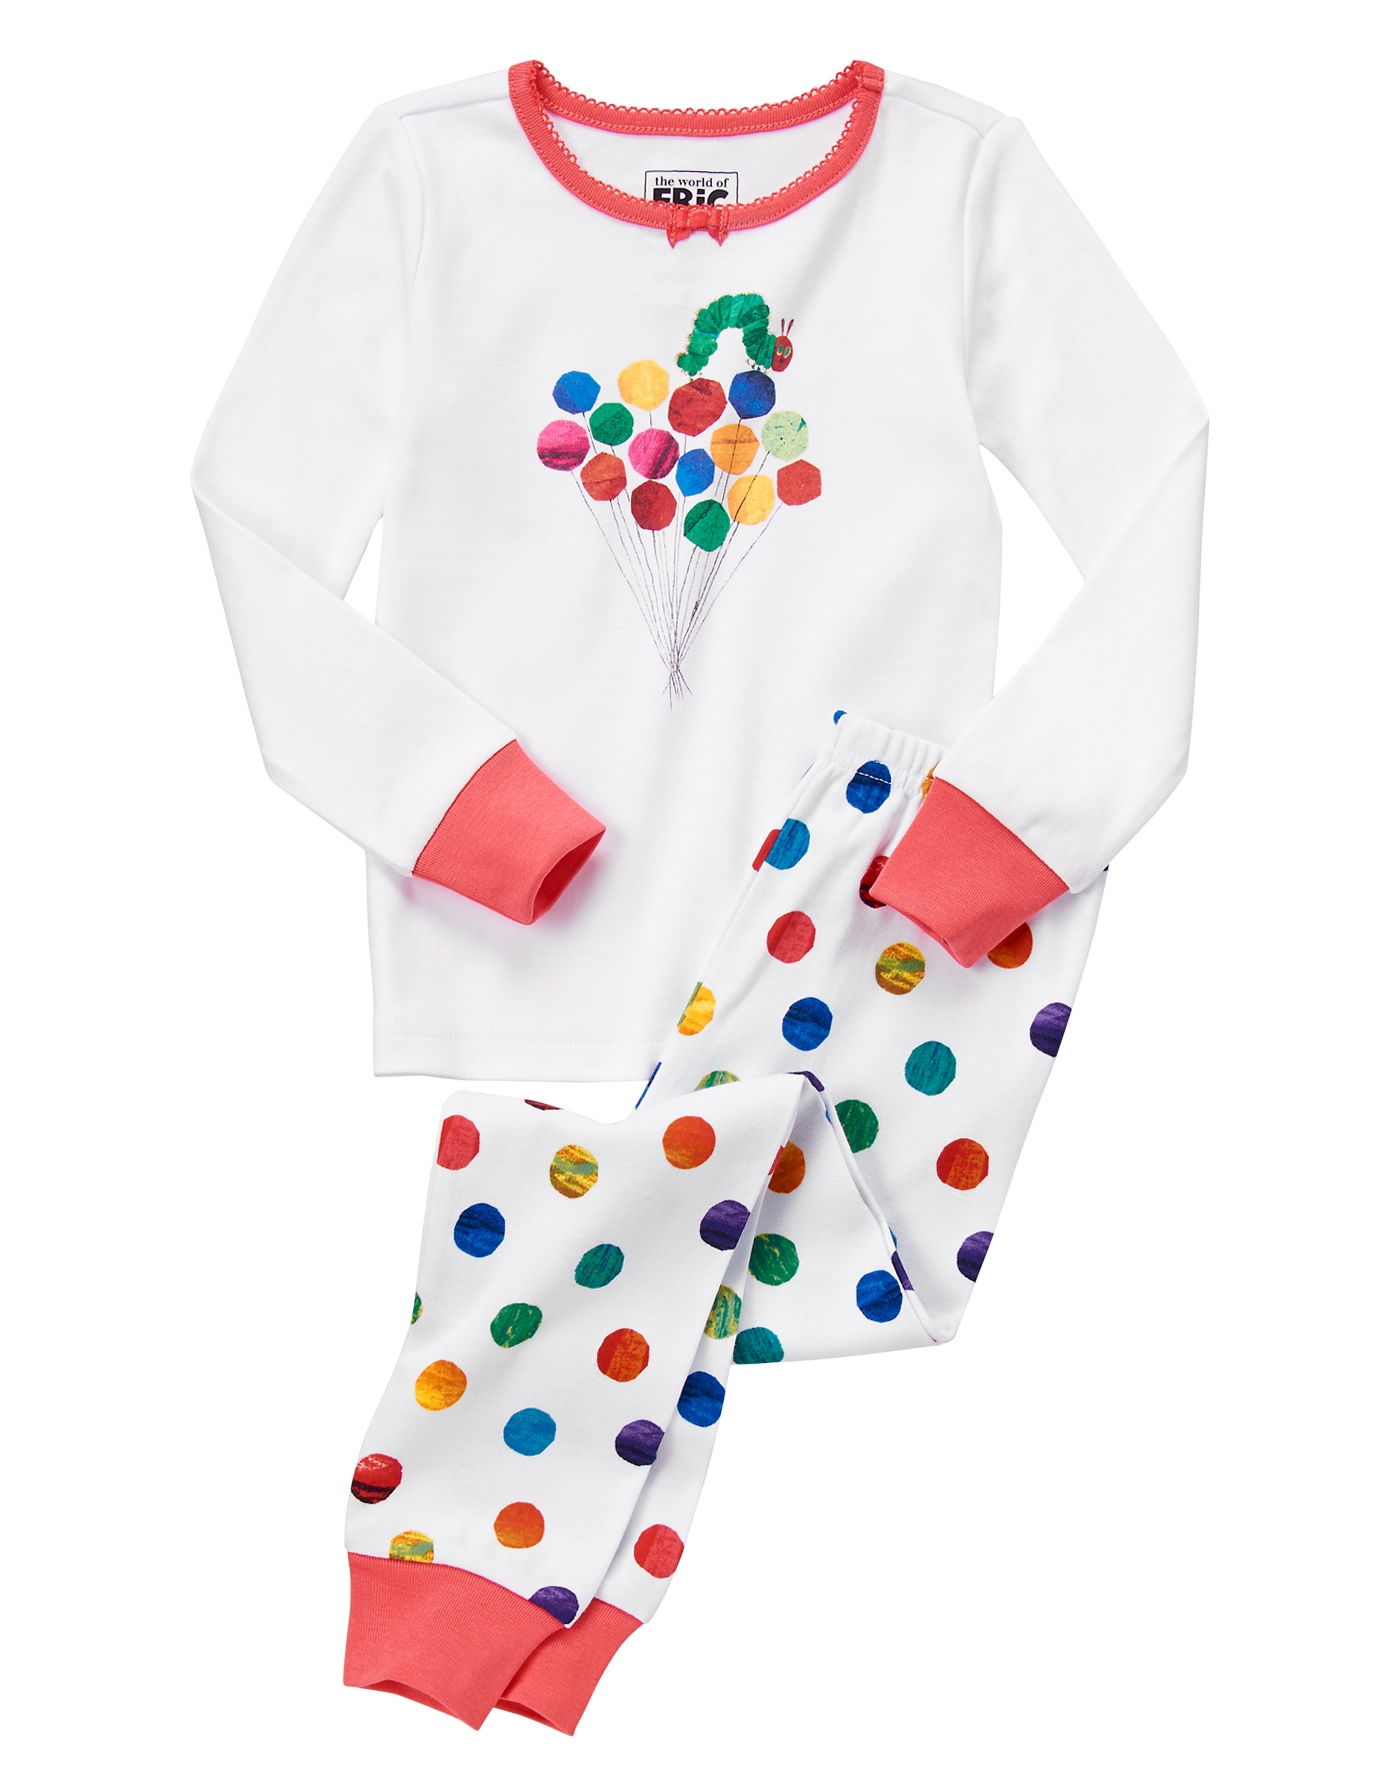 The Very Hungry Caterpillar balloon jammies